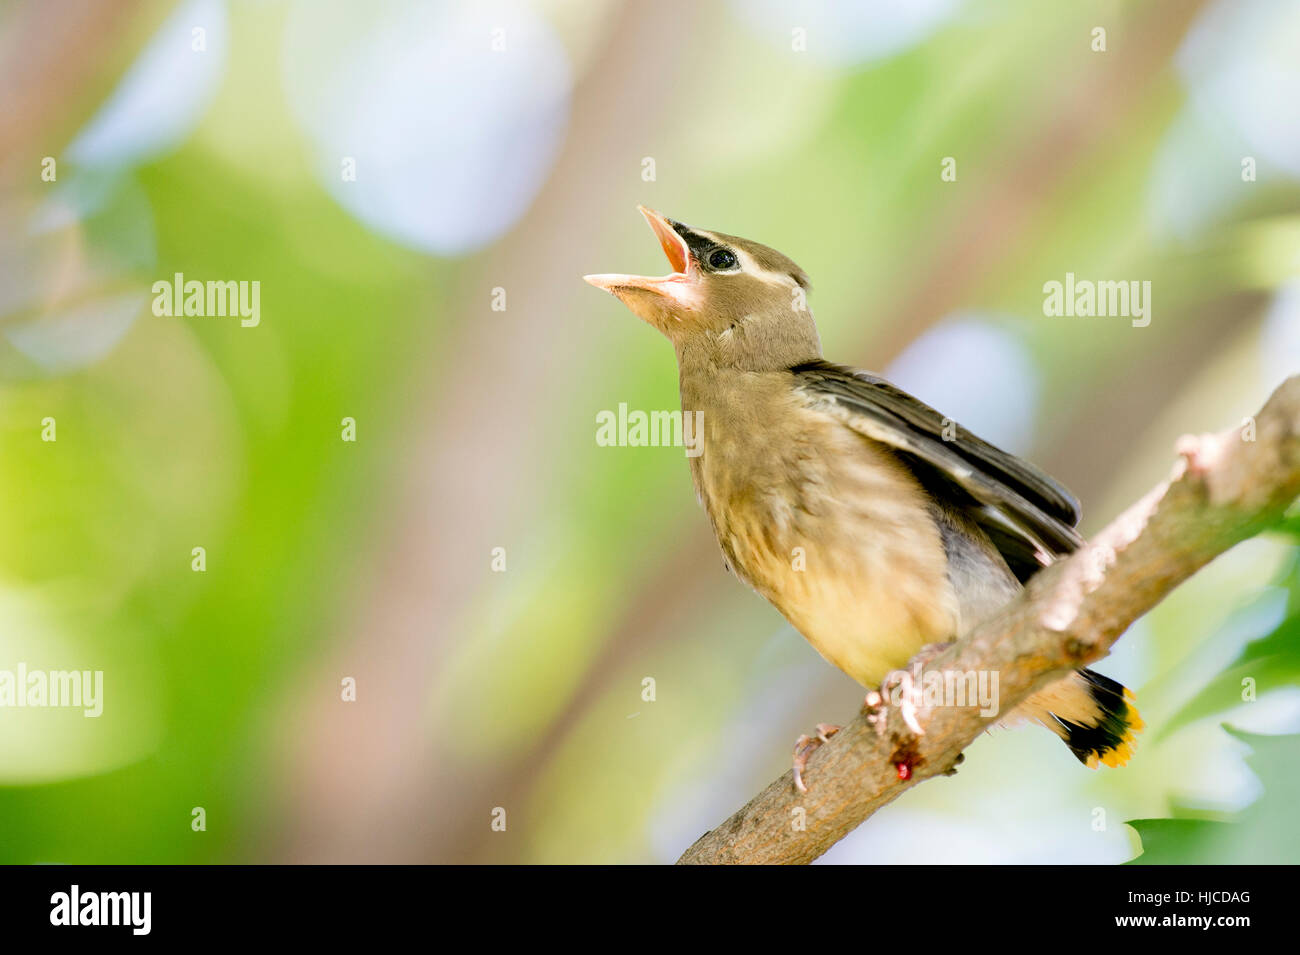 A young Cedar Waxwing calls loudly for food from its parents. - Stock Image